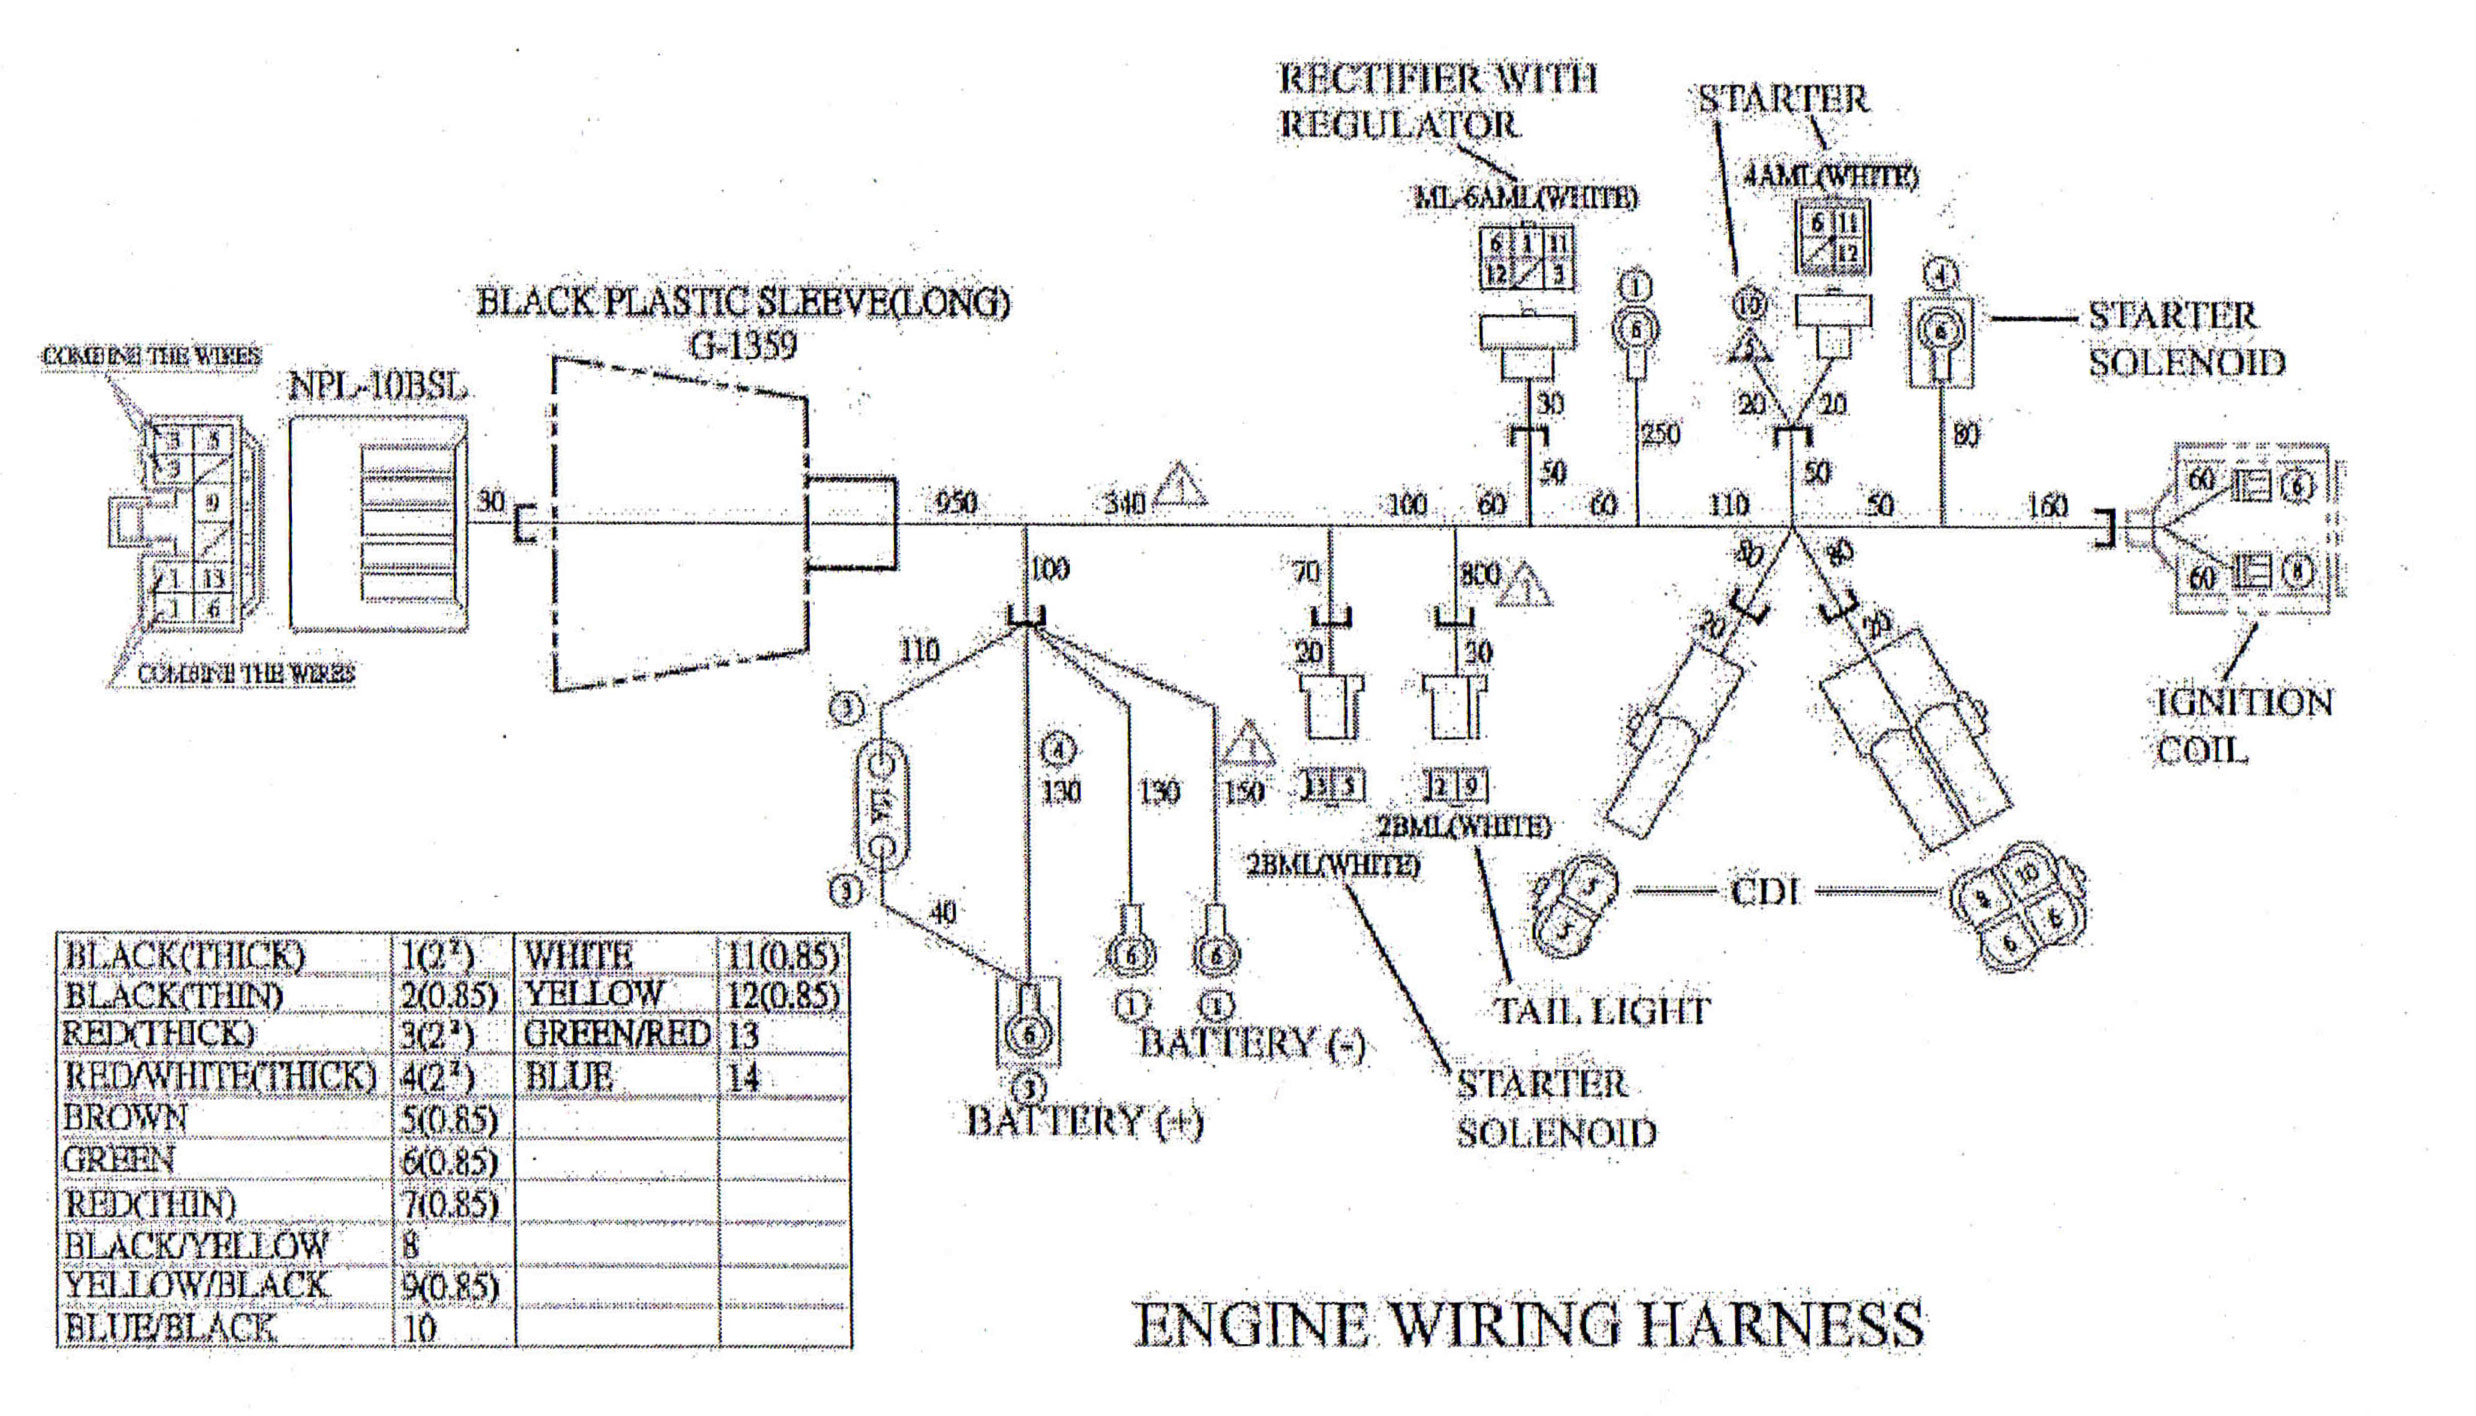 yamaha c3 wiring diagram network and critical path engine harness for yerf dog cuvs 05138 bmi